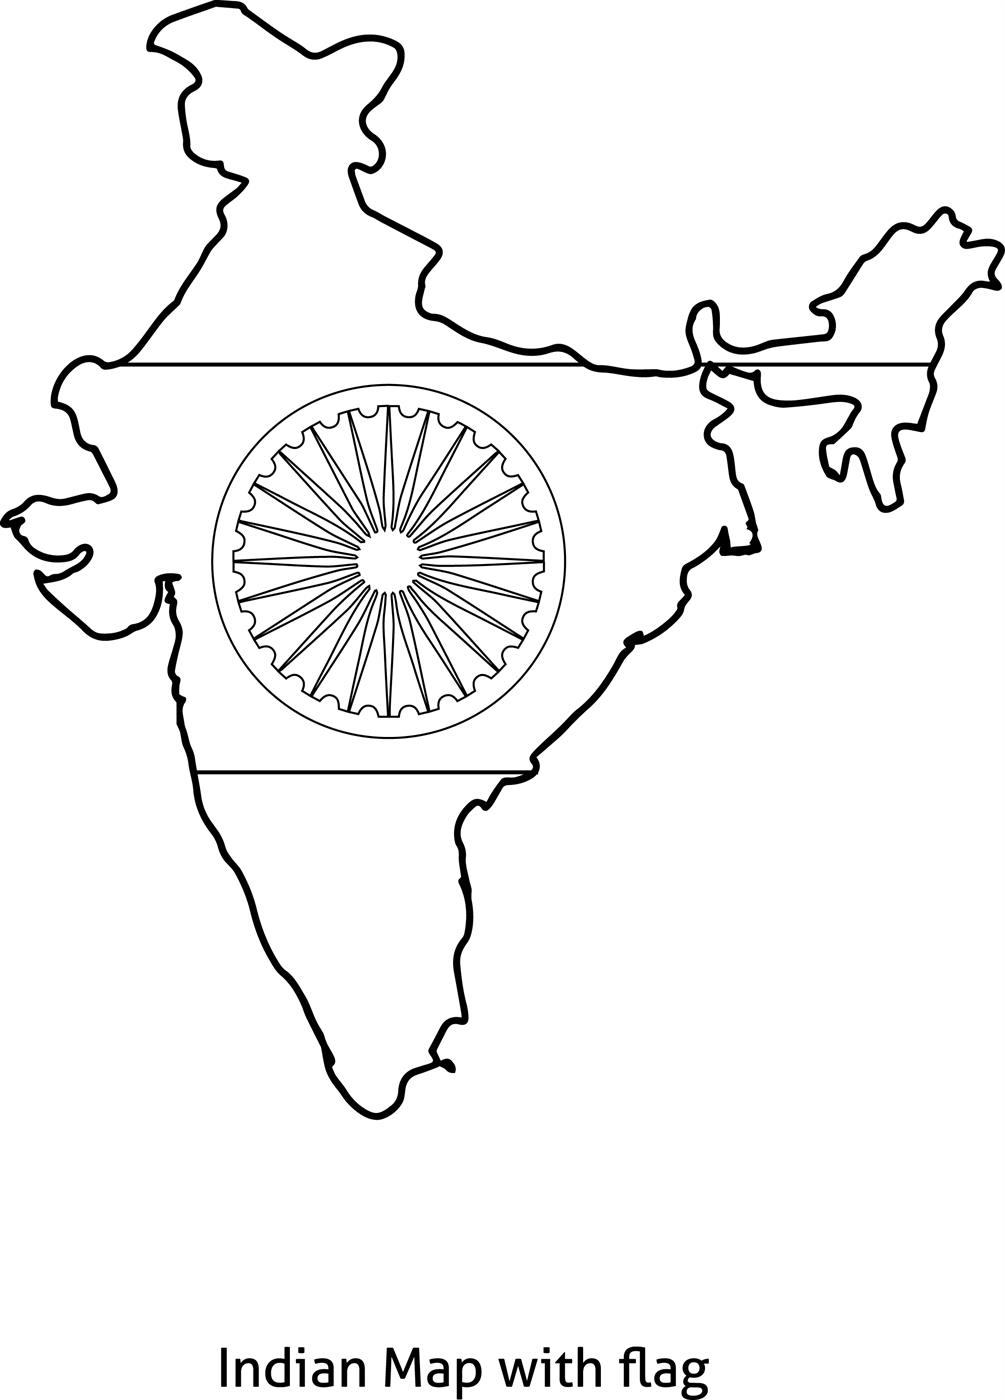 Flag Of India Coloring Page Miakenasnet